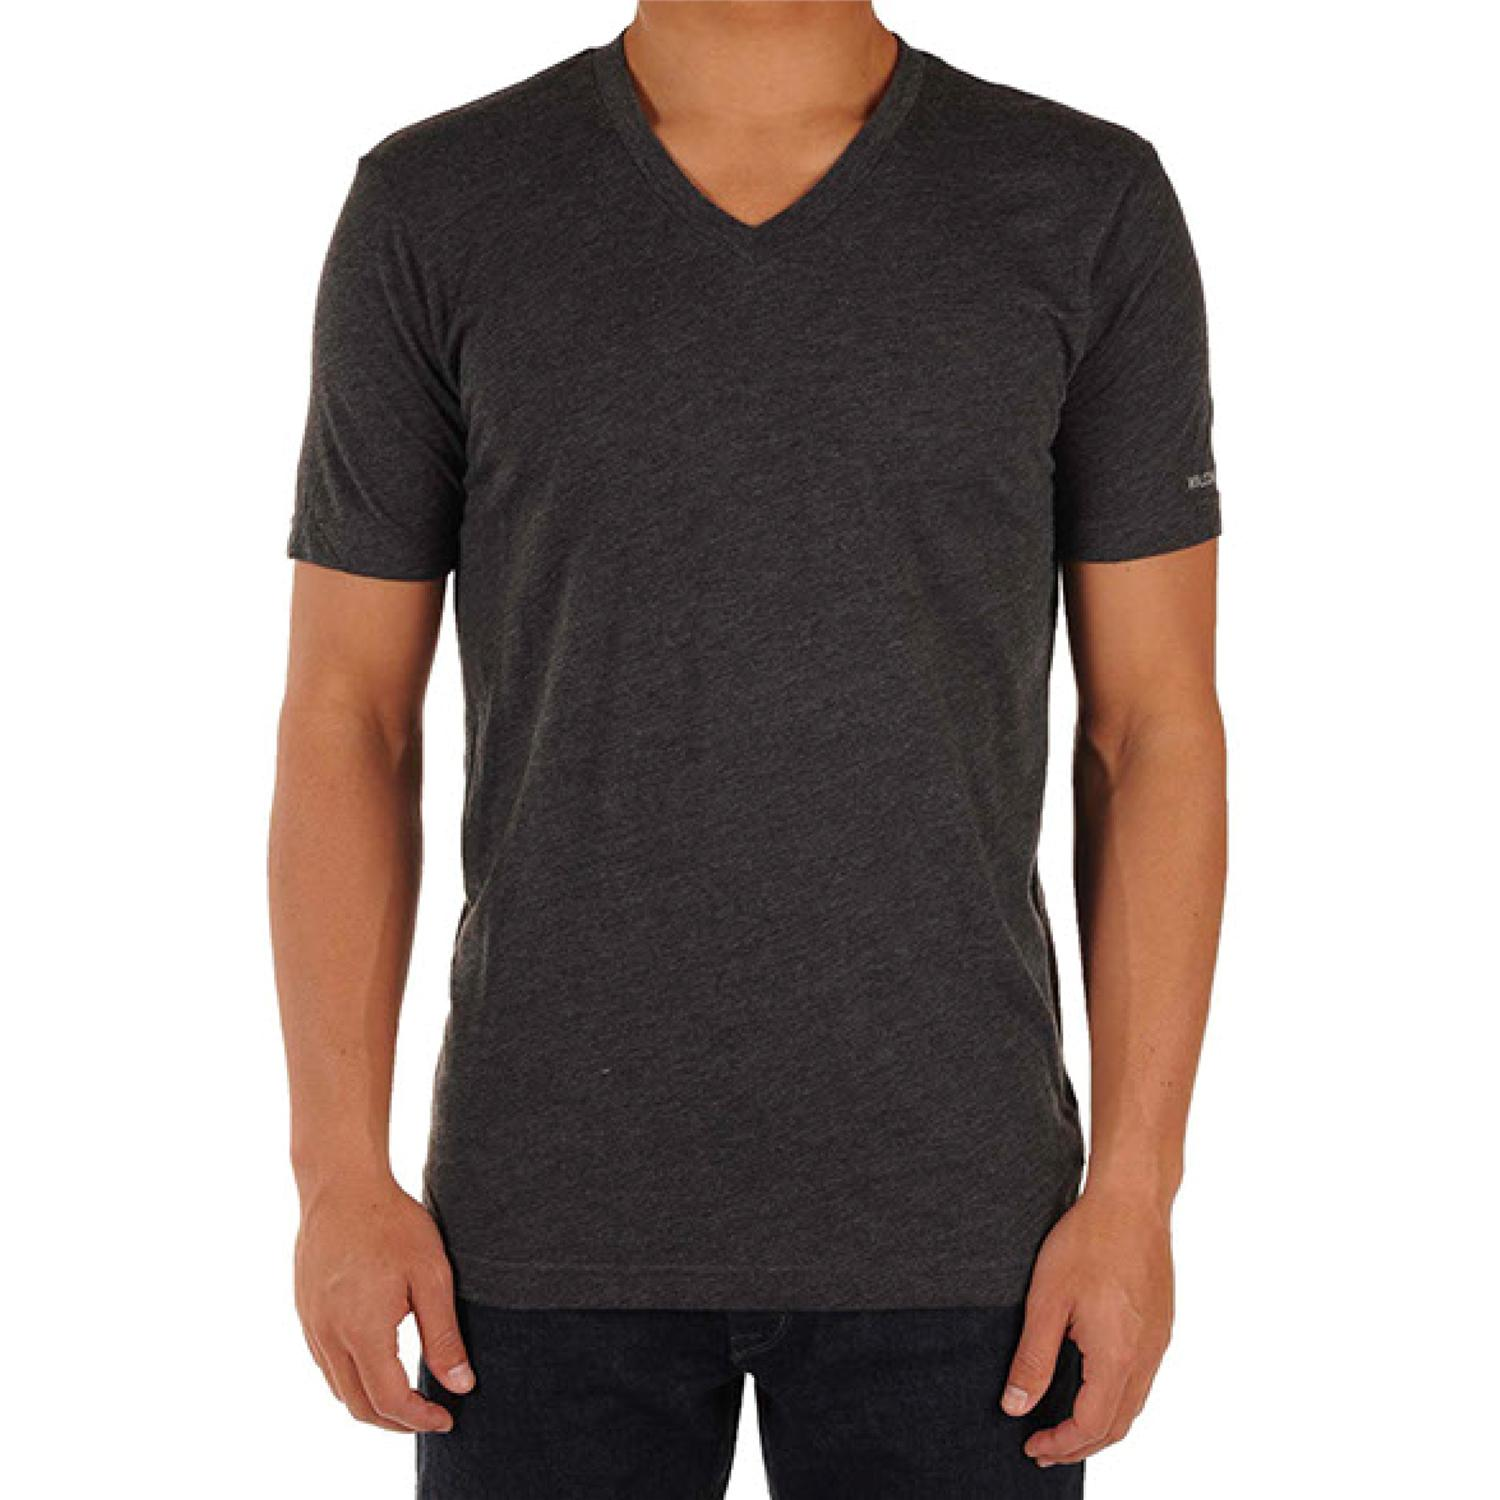 V Neck T Shirt Volcom Solid Heather Too V Neck T Shirt | Evo Outlet